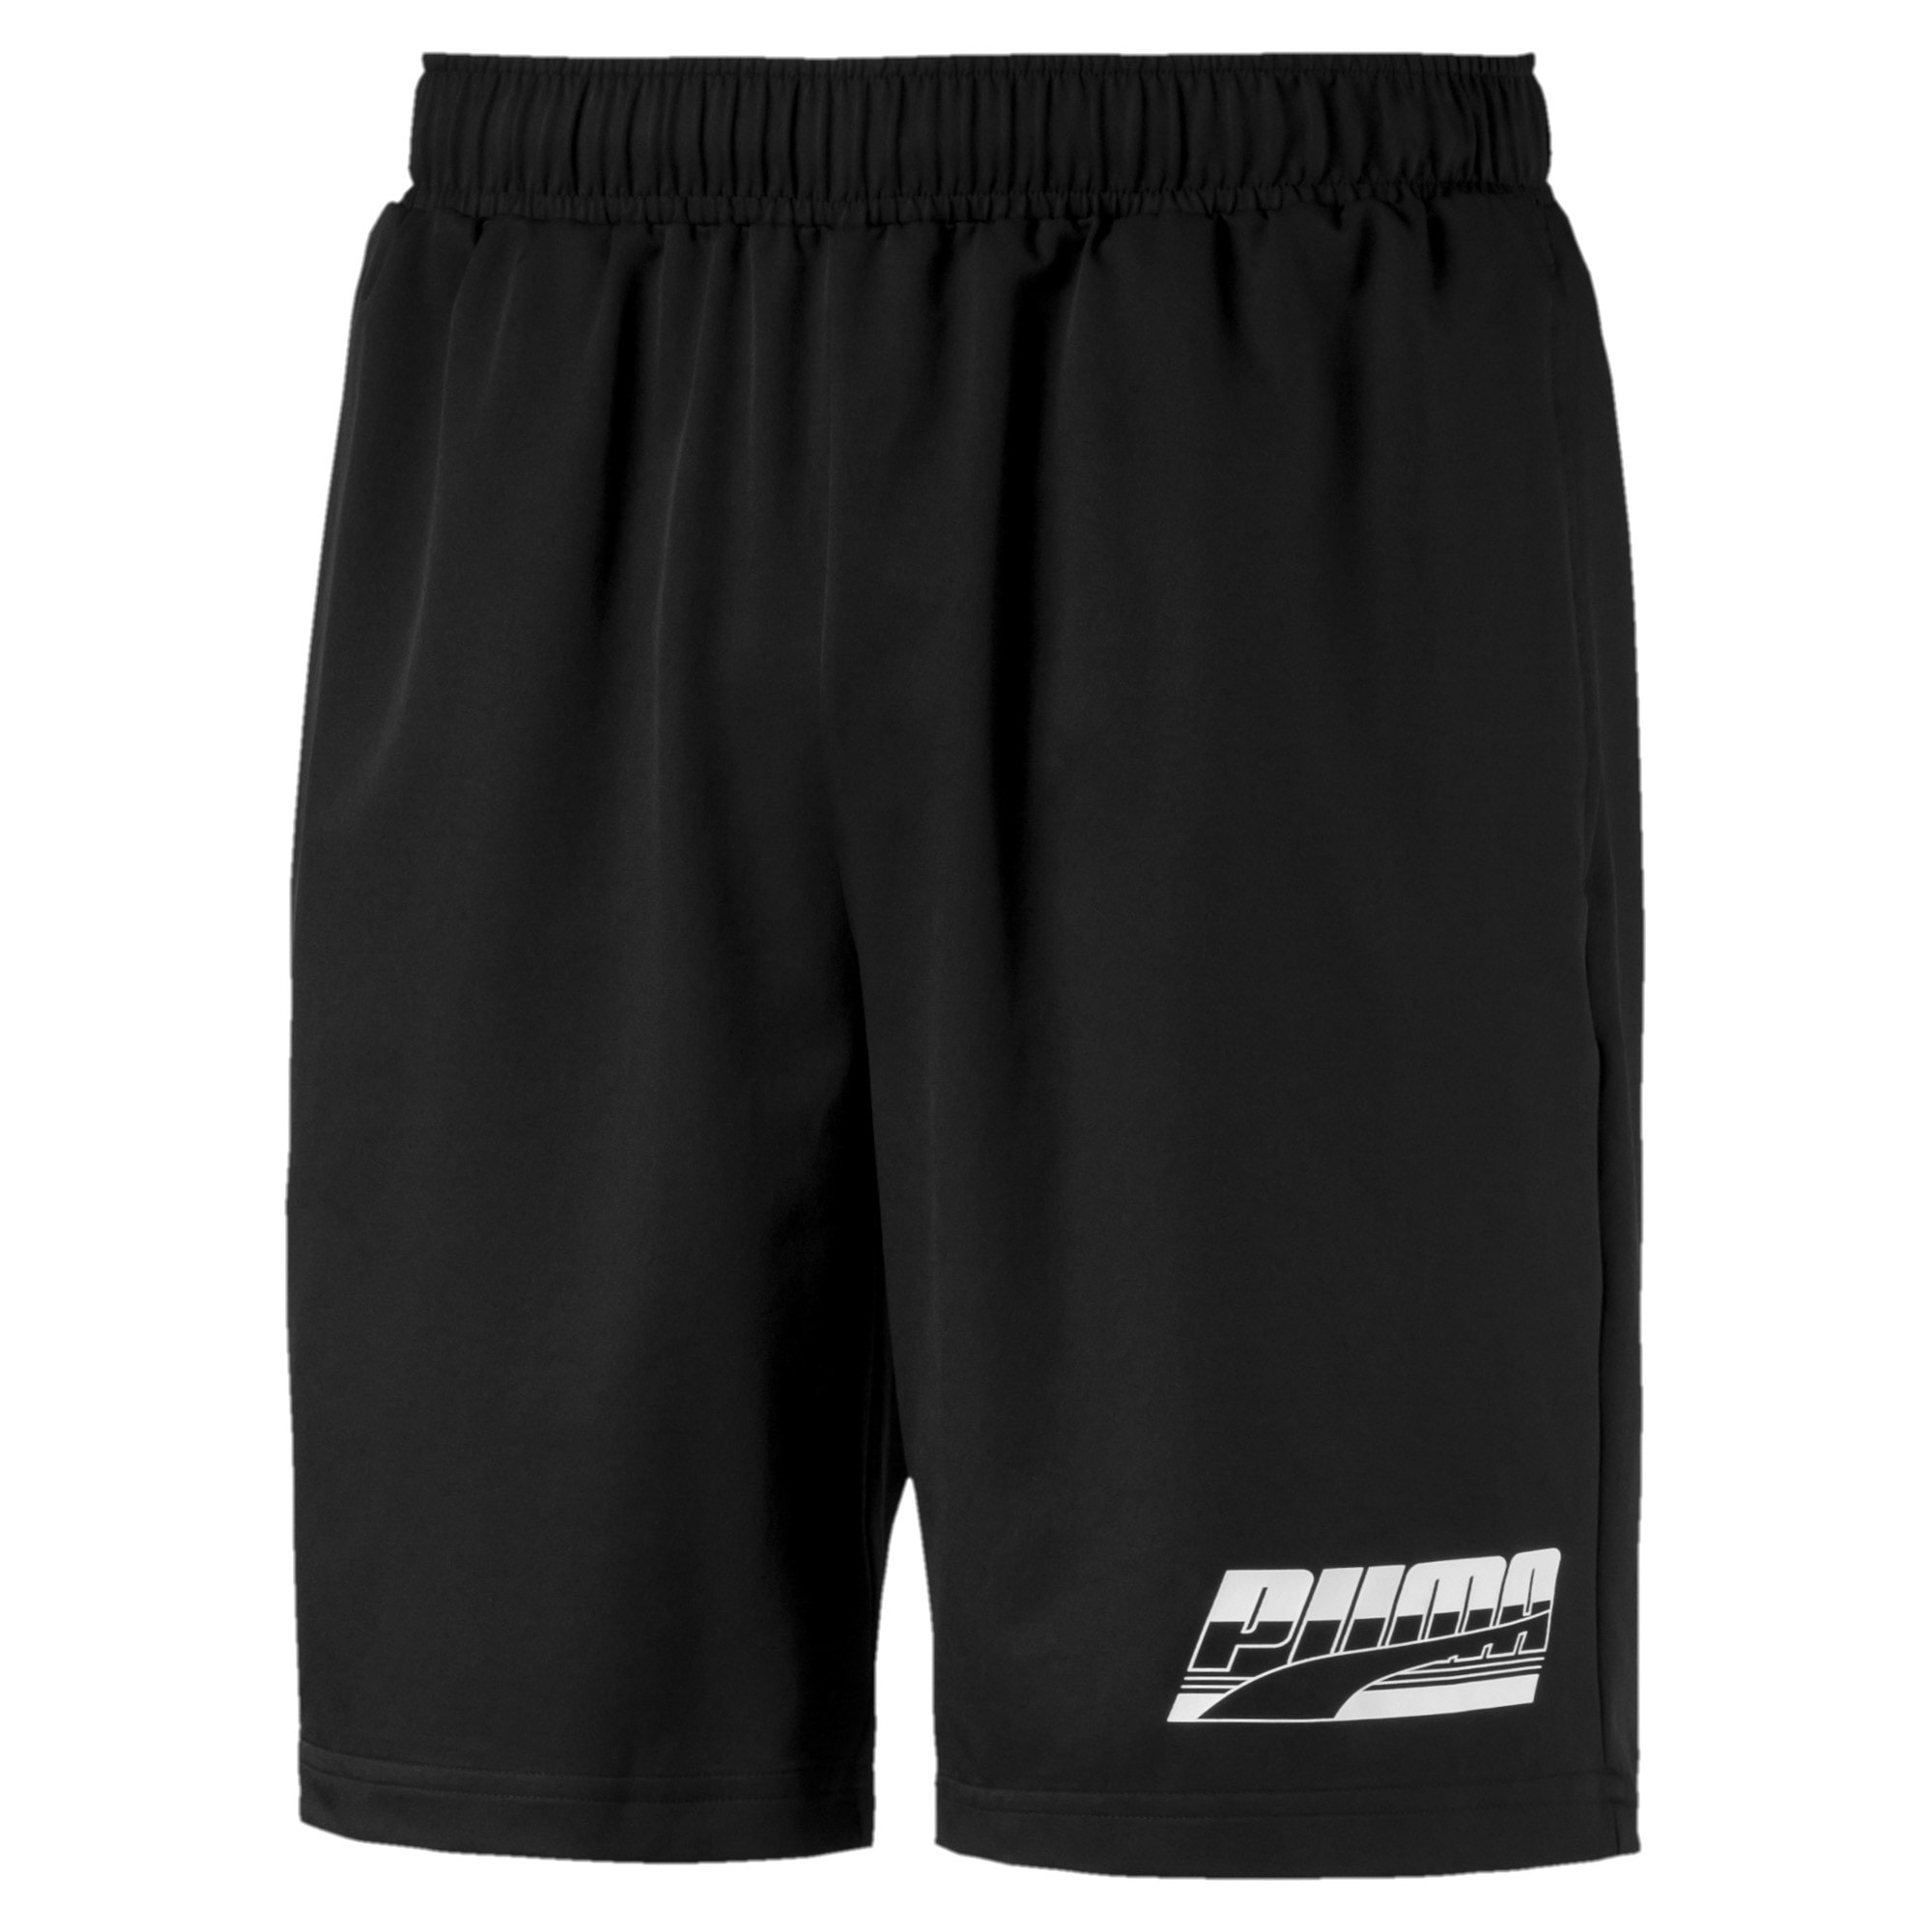 "Thumbnail 1 of Rebel Woven 8"" Men's Shorts, Puma Black, medium"